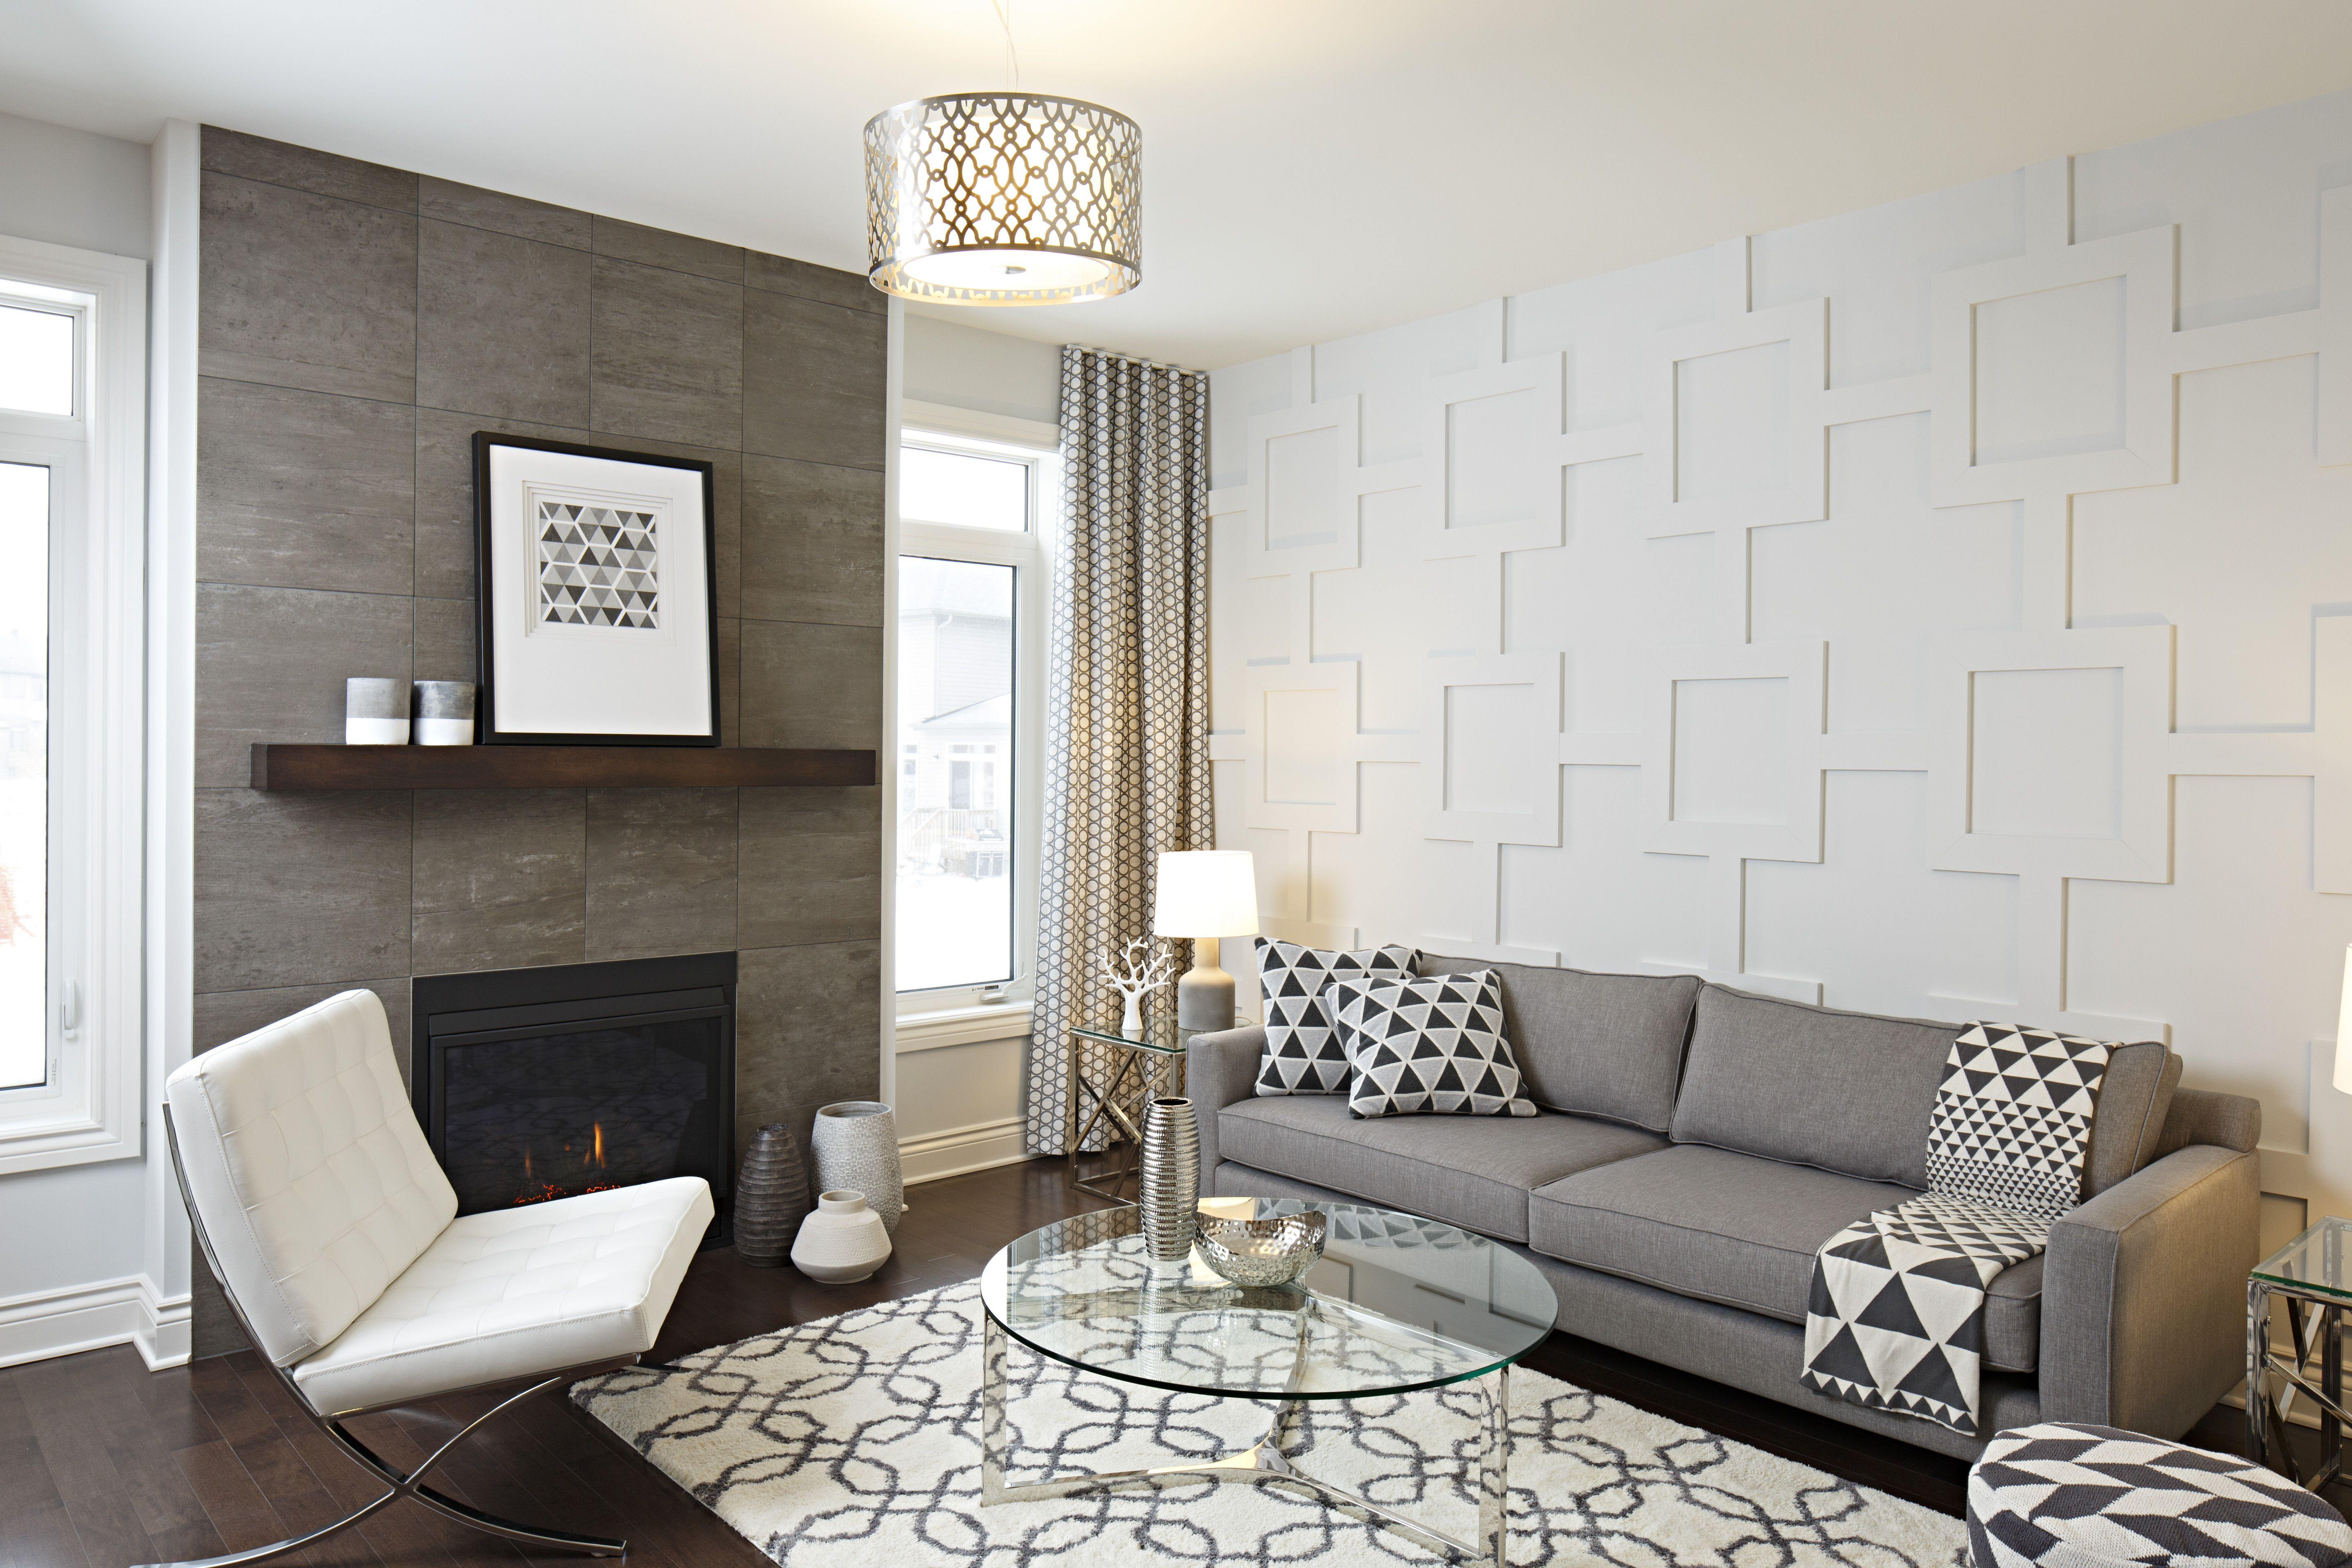 Cozy and trendy living room design featuring tiled fireplace ...